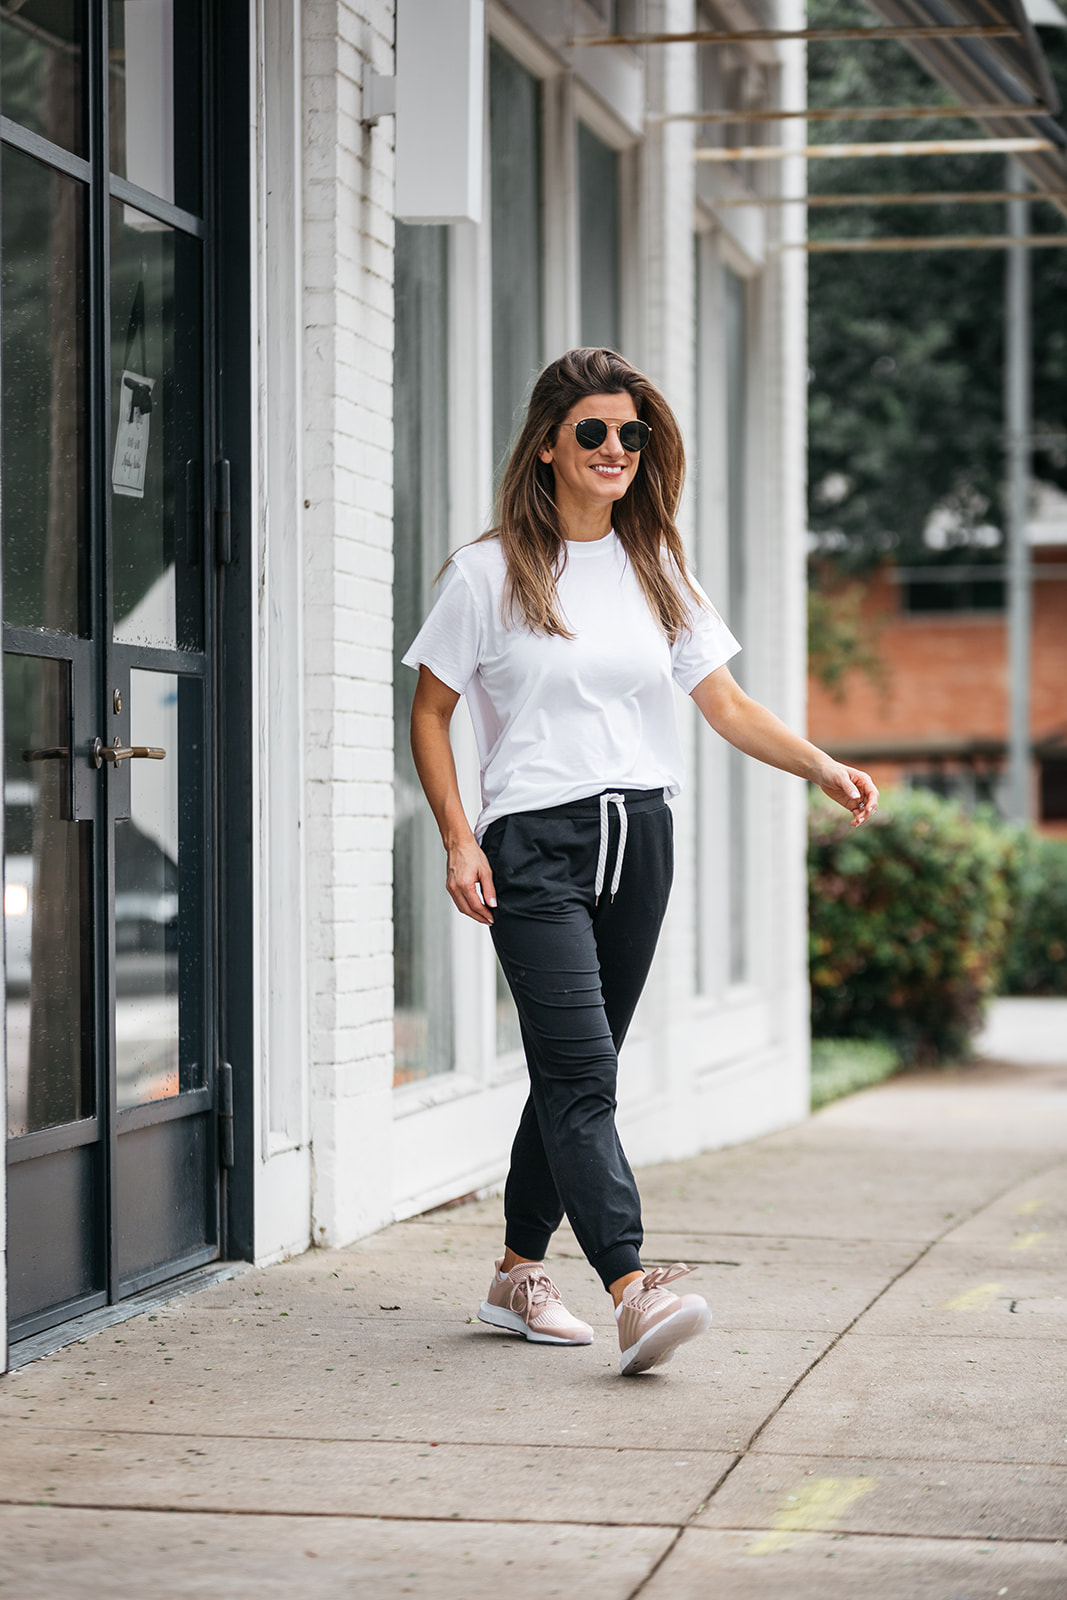 brighton butler wearing vuori jogges and lululemon all yours tee and adidas swift run sneakers